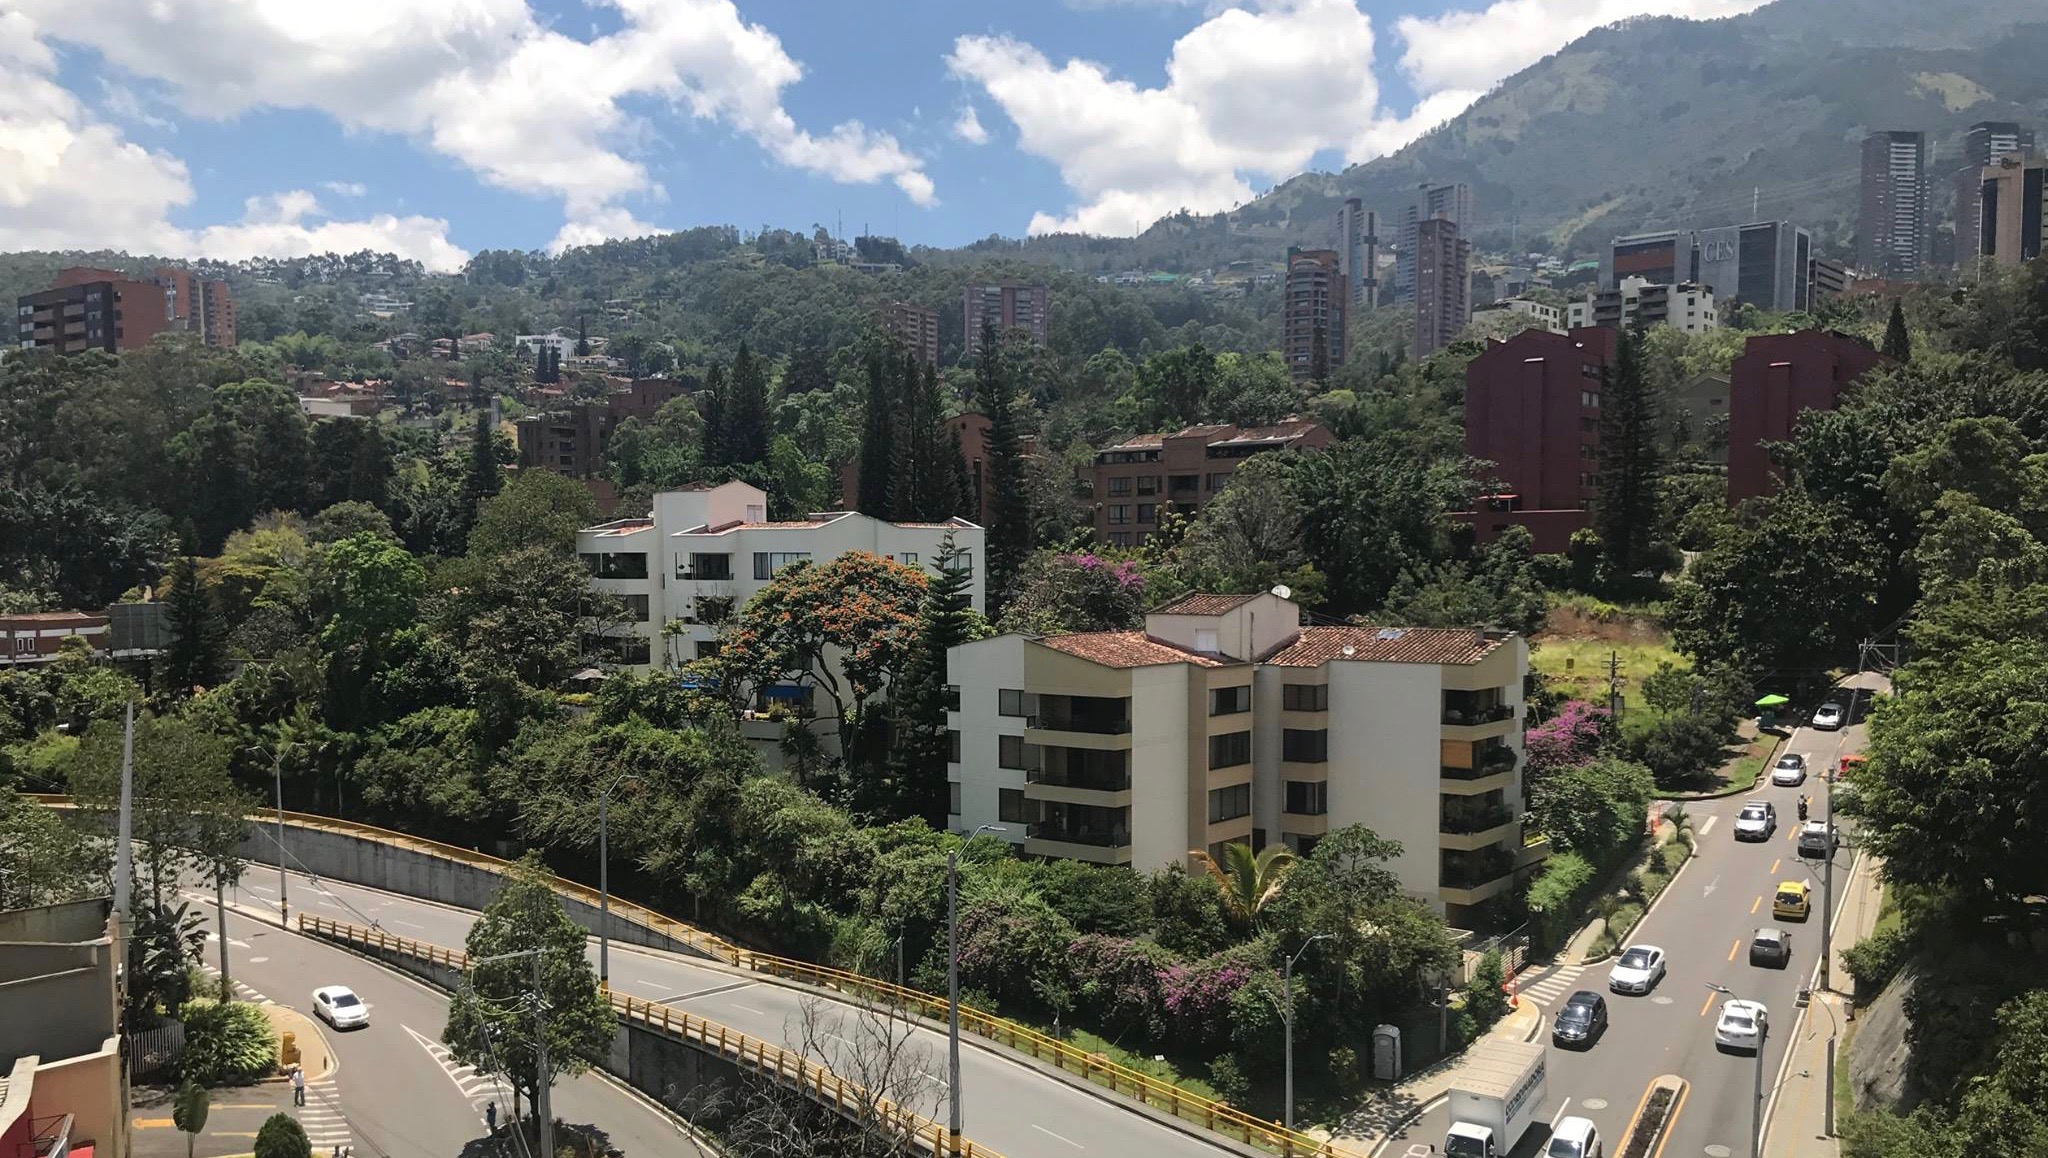 Medellín has the power of a city twice as big. Located in a narrow valley, its horizon reaches the sky, forming tall buildings and offices against the background of irregular peaks in all directions.